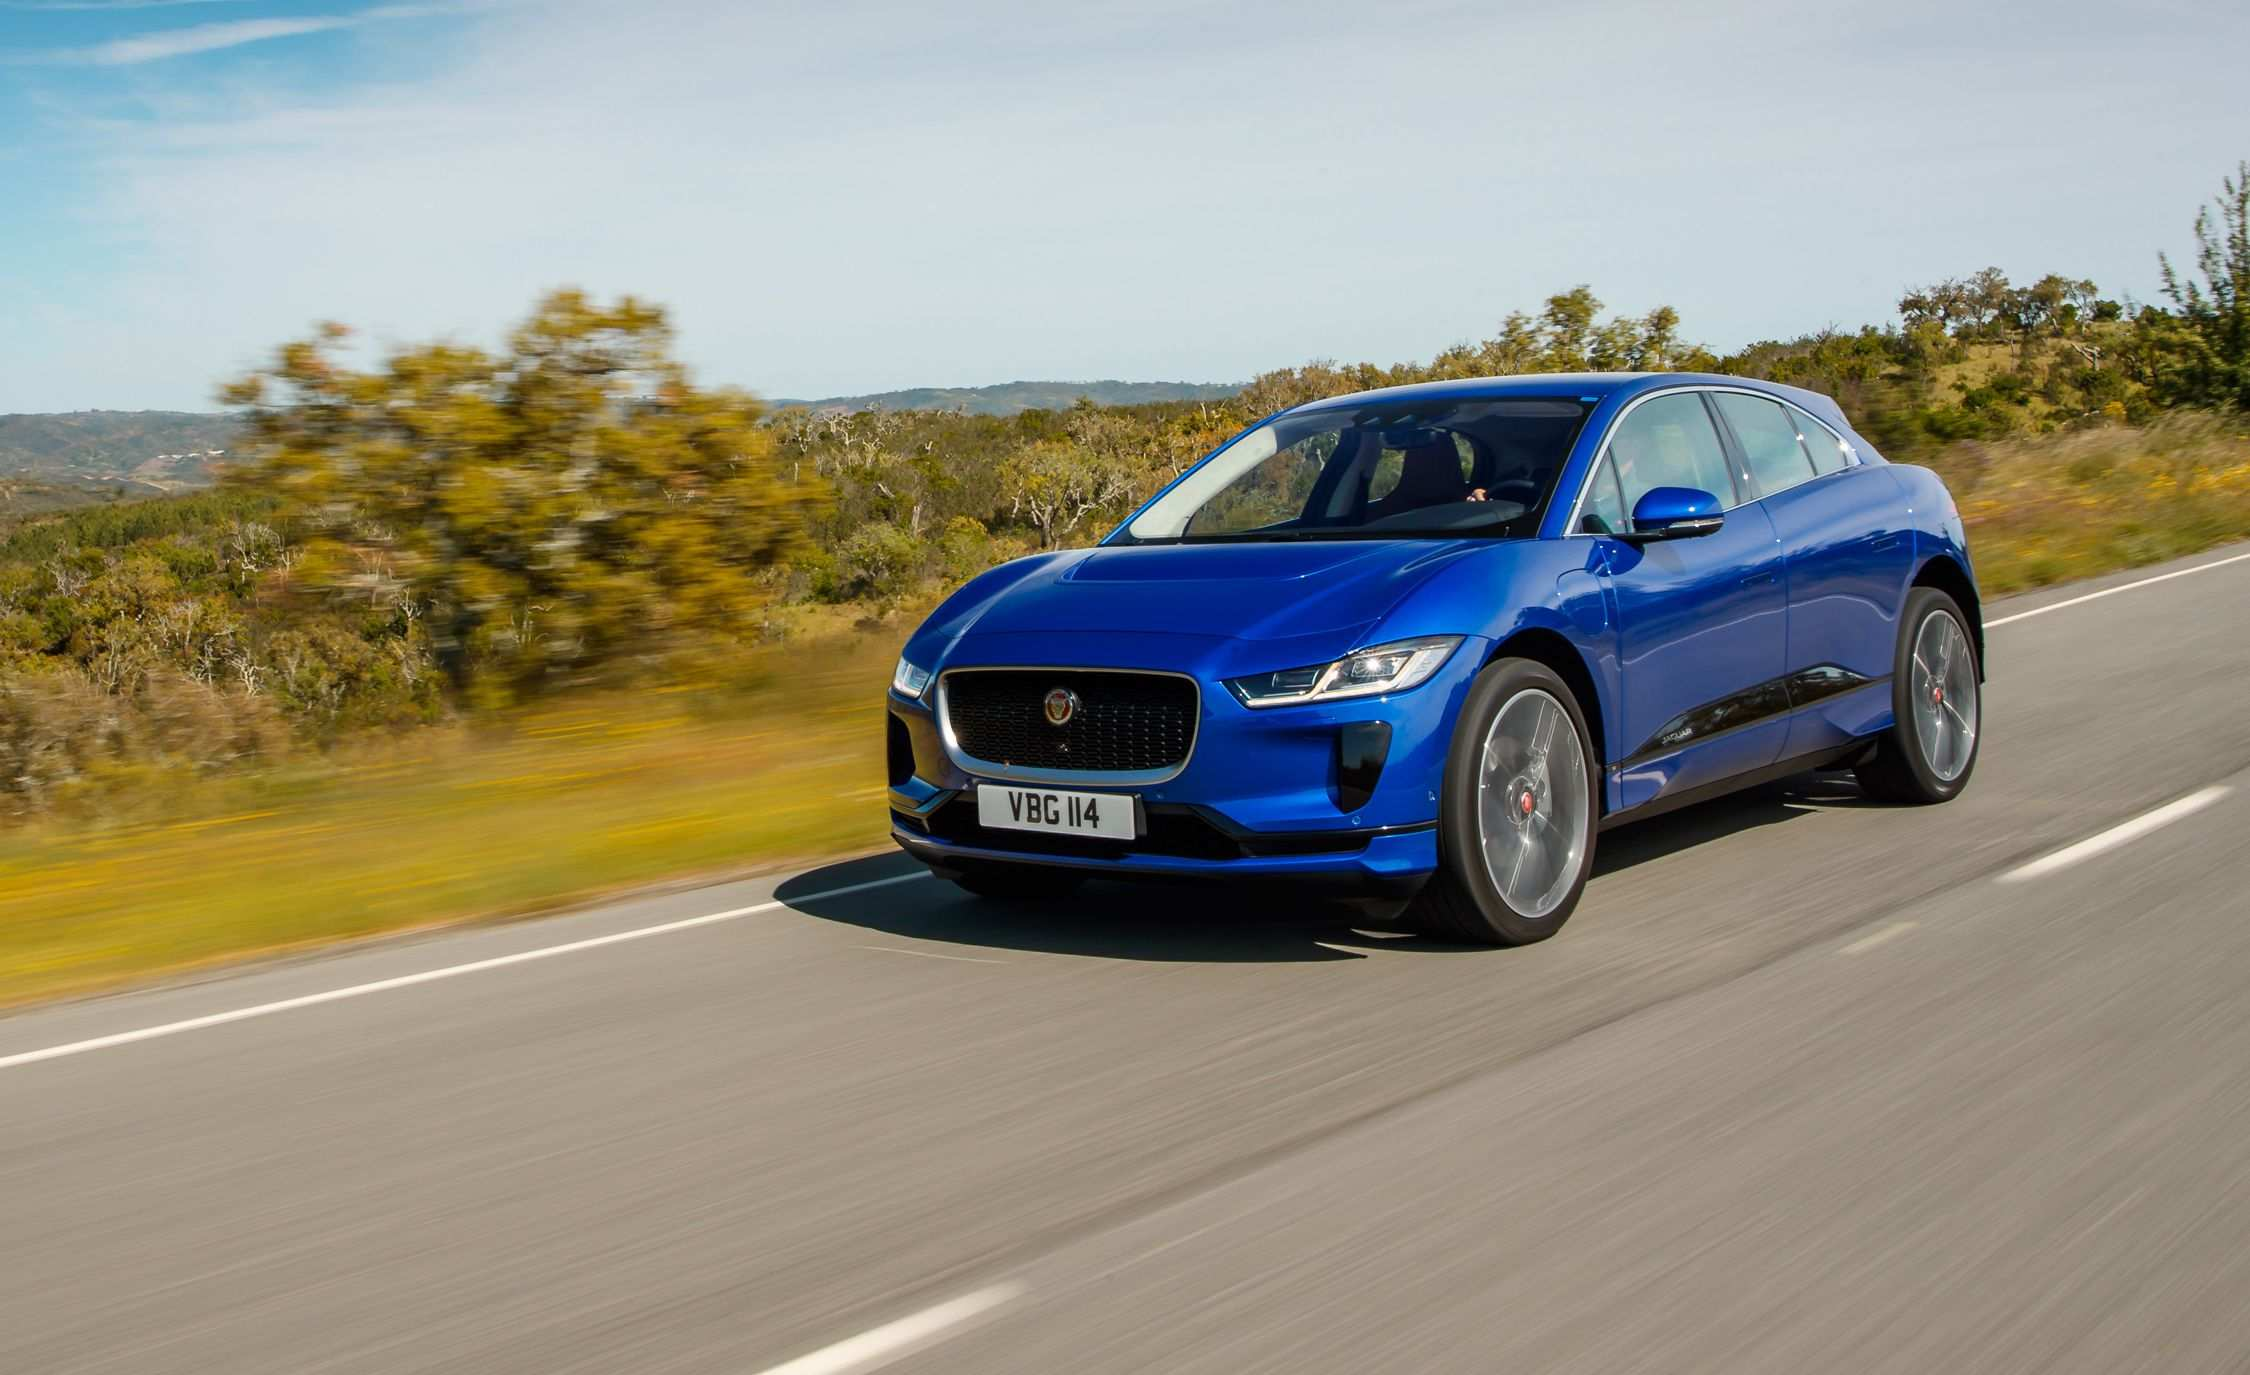 90 The 2019 Jaguar I Pace Price First Drive with 2019 Jaguar I Pace Price